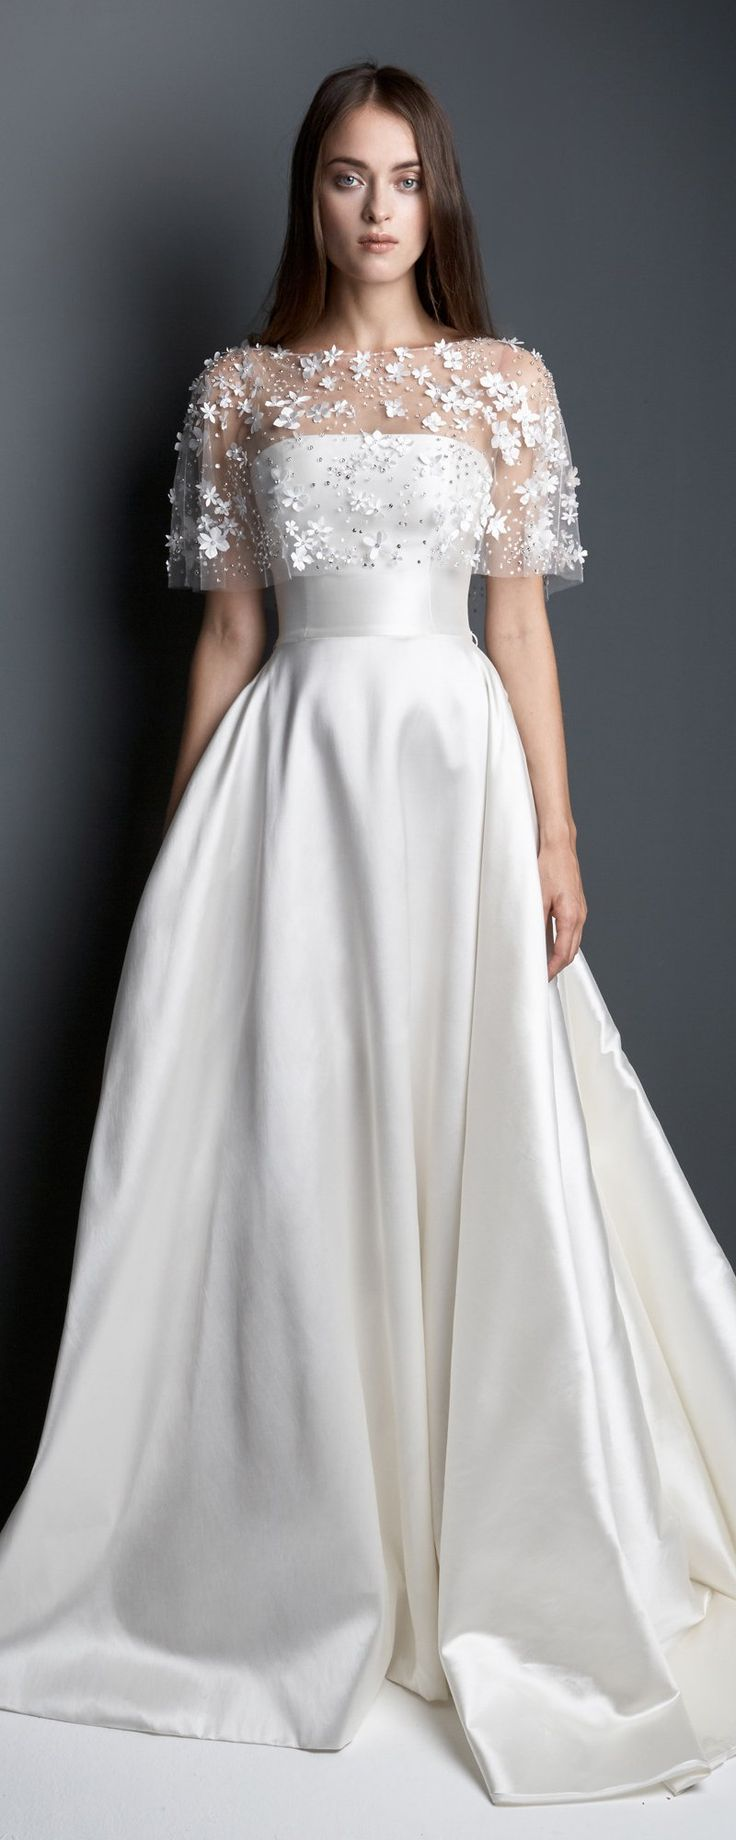 790 best Dresses images on Pinterest | Ball gown, Evening gowns and ...